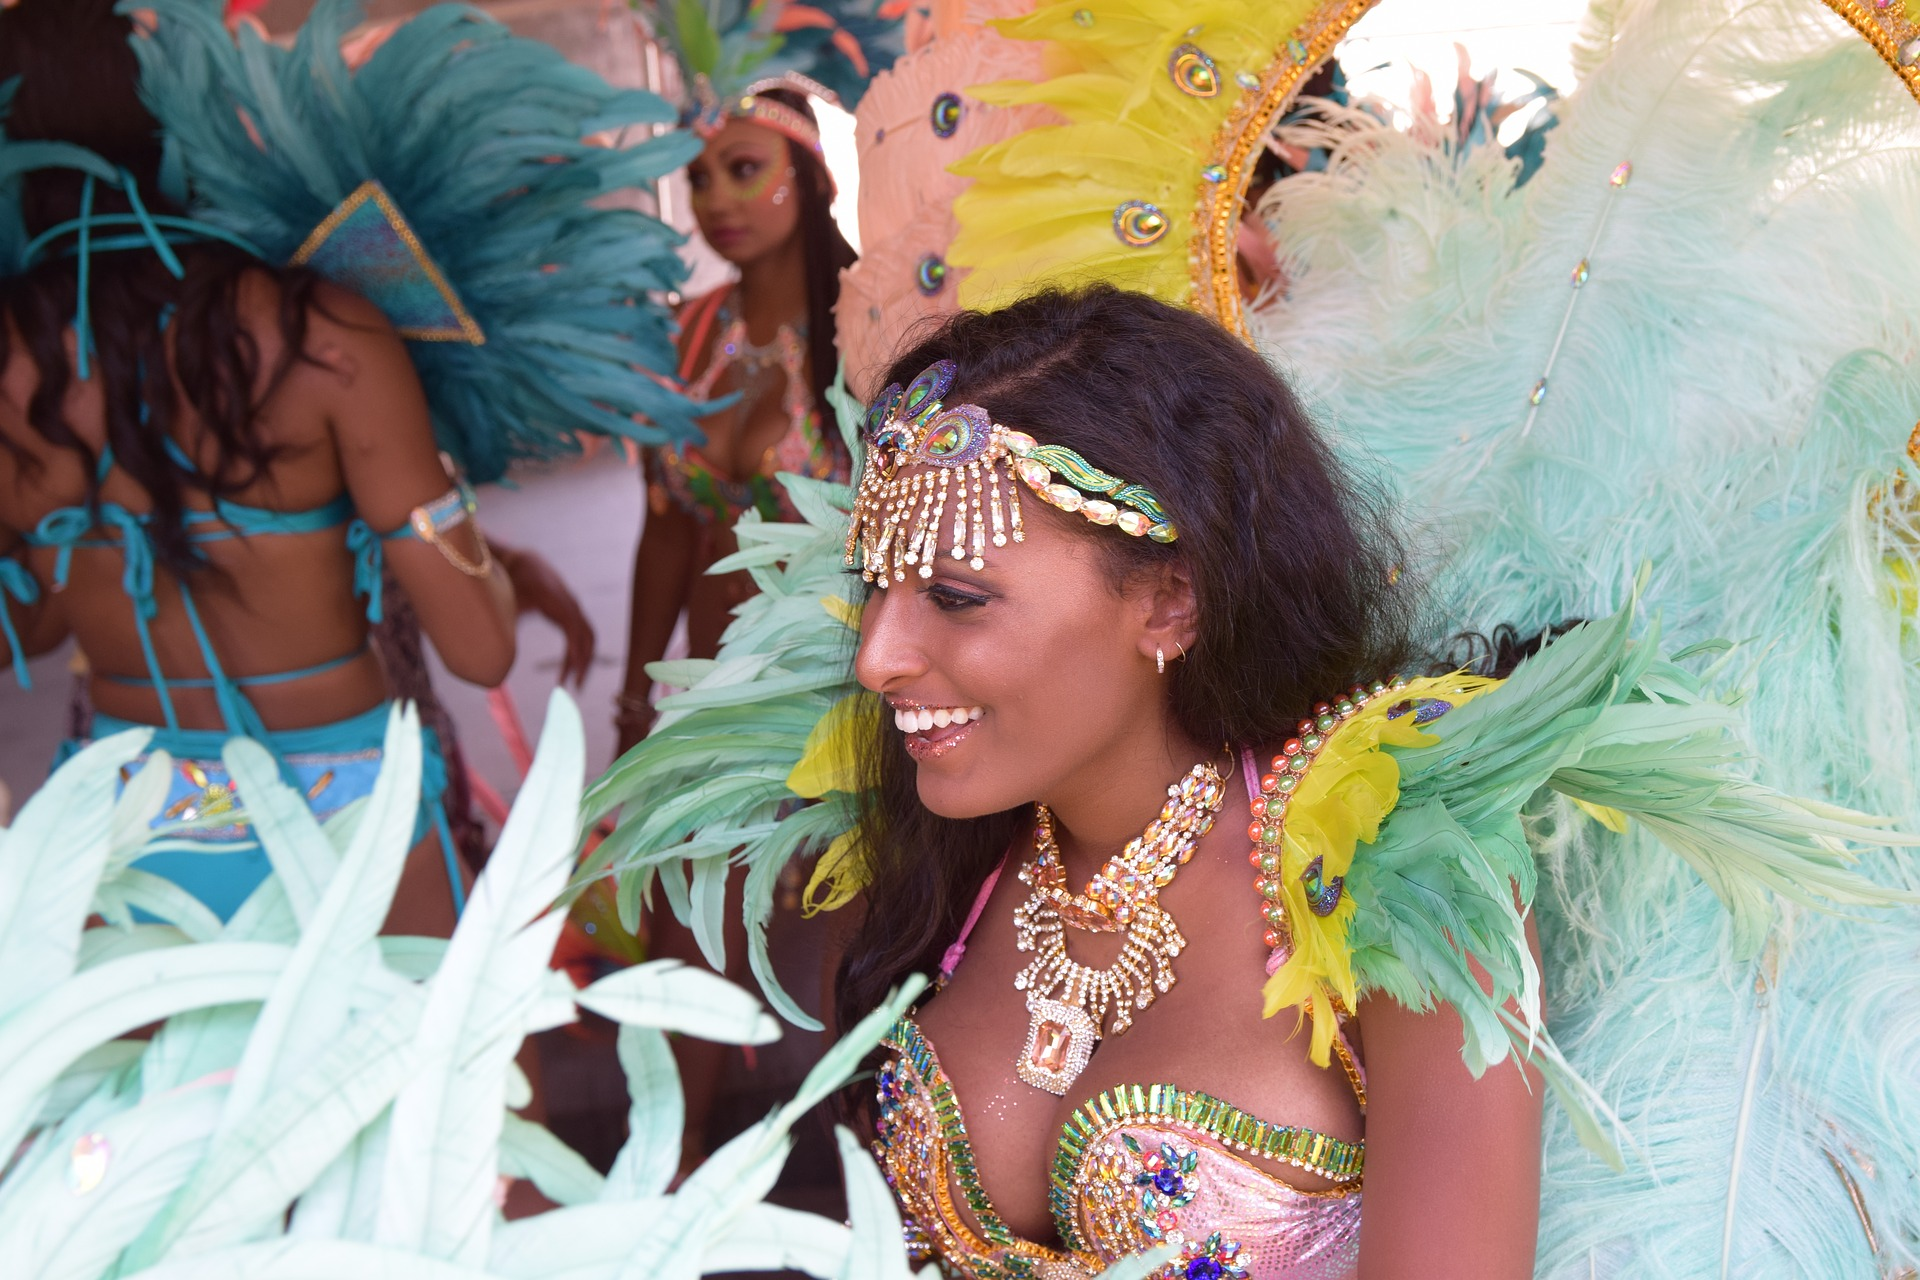 Caribbean.com will help agents sell more Caribbean travel